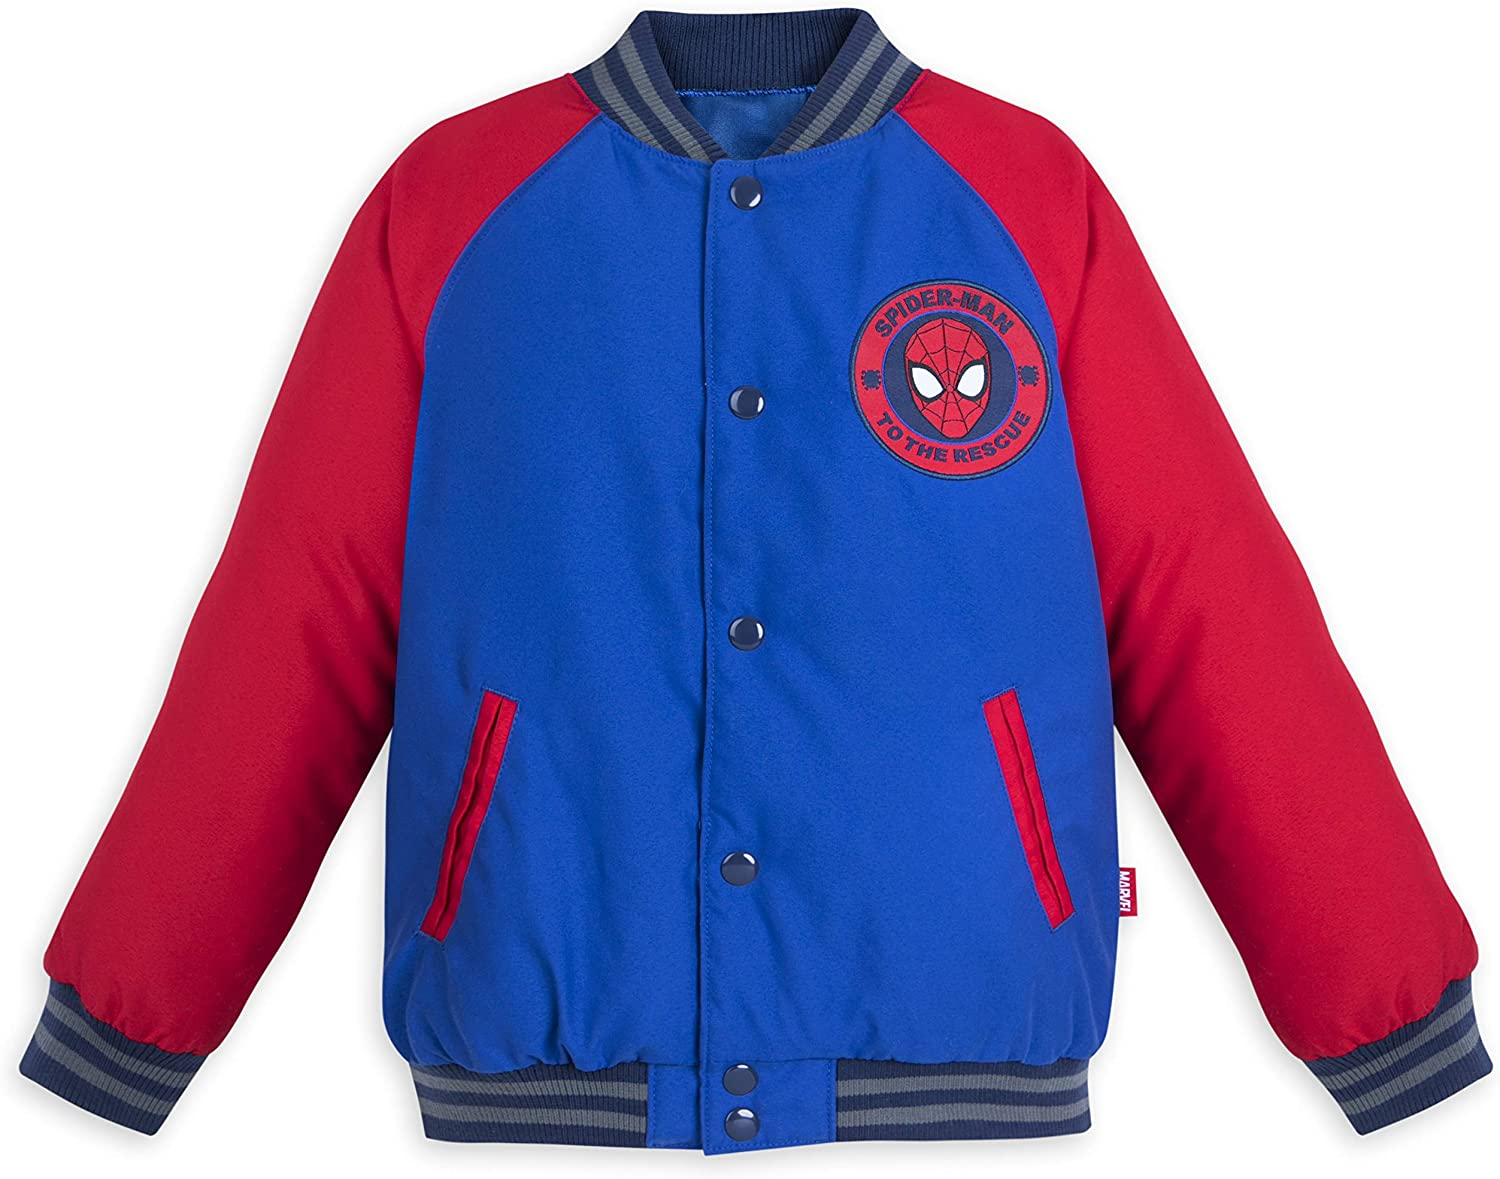 OFFICIAL LICENSED MARVEL SPIDERMAN COLLEGE VARISTY JACKET NEW